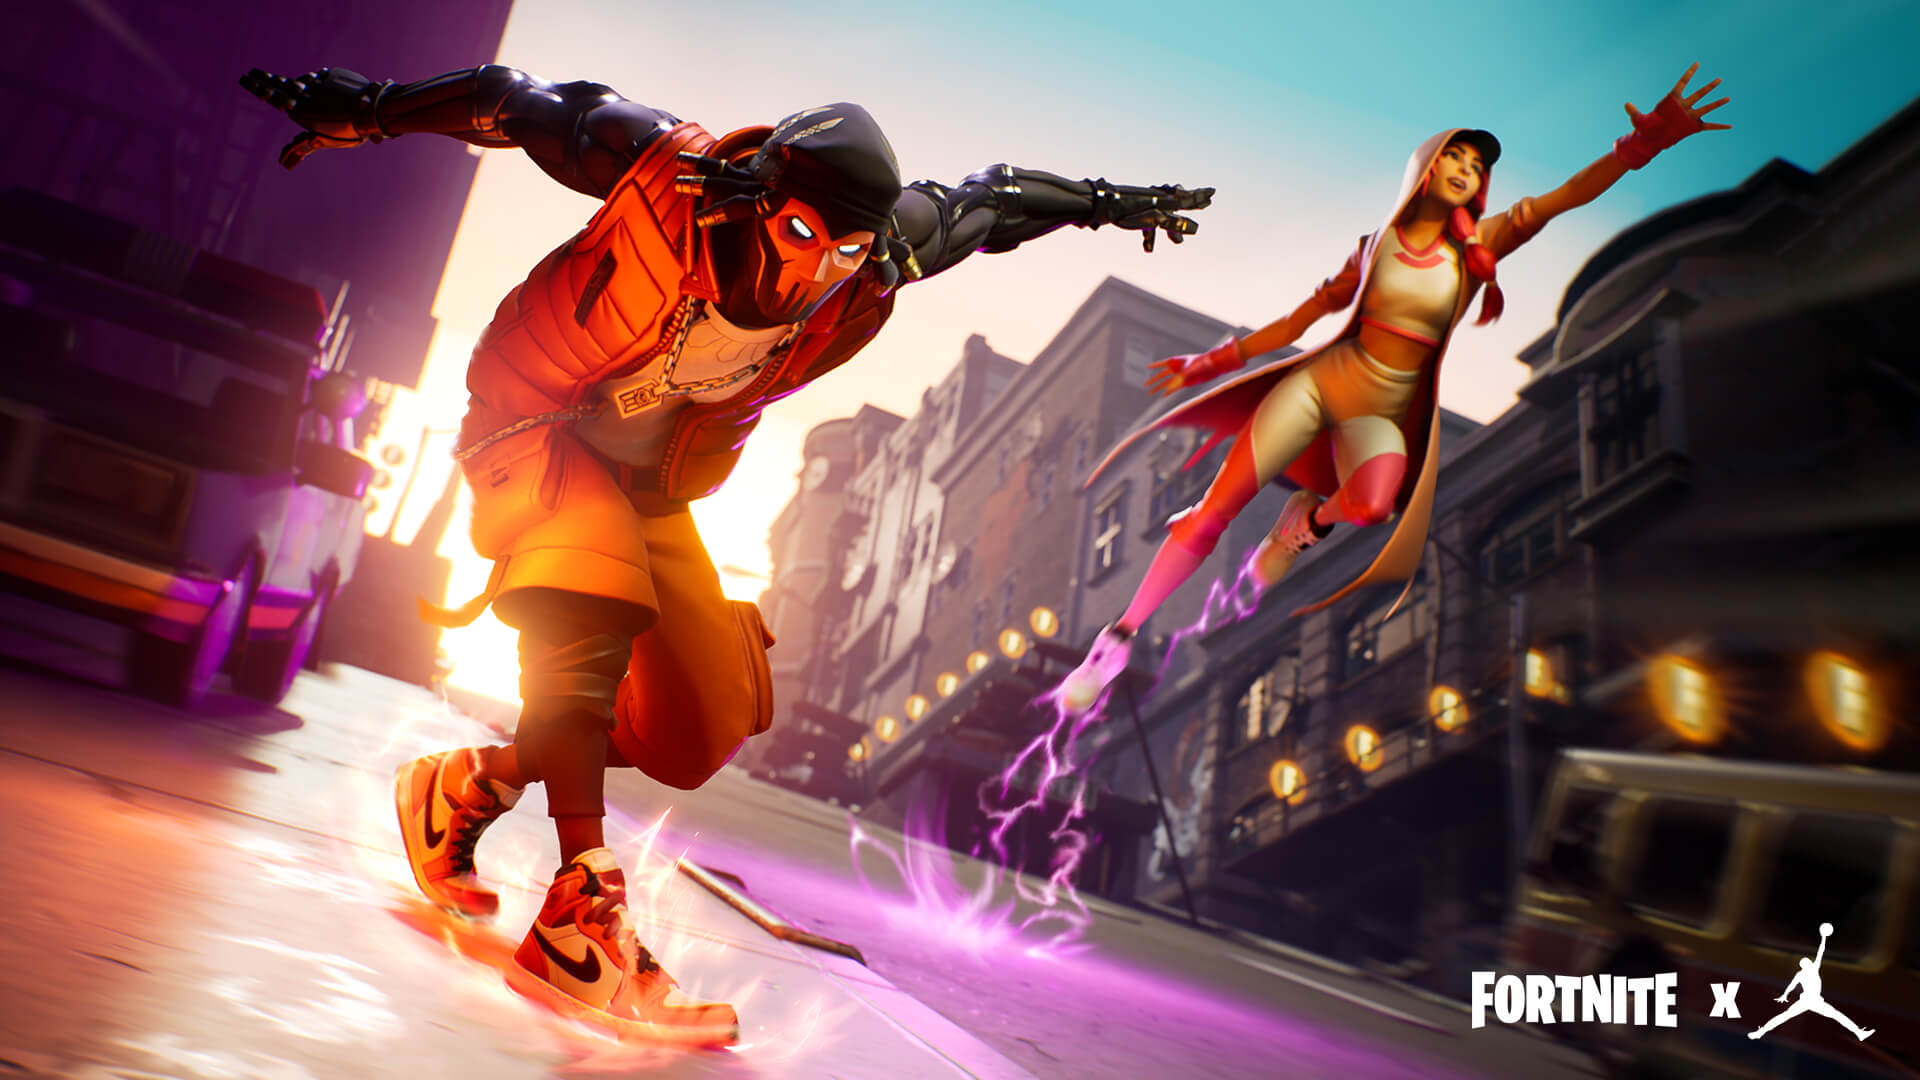 Fortnite is basically a giant, endless advertisement now